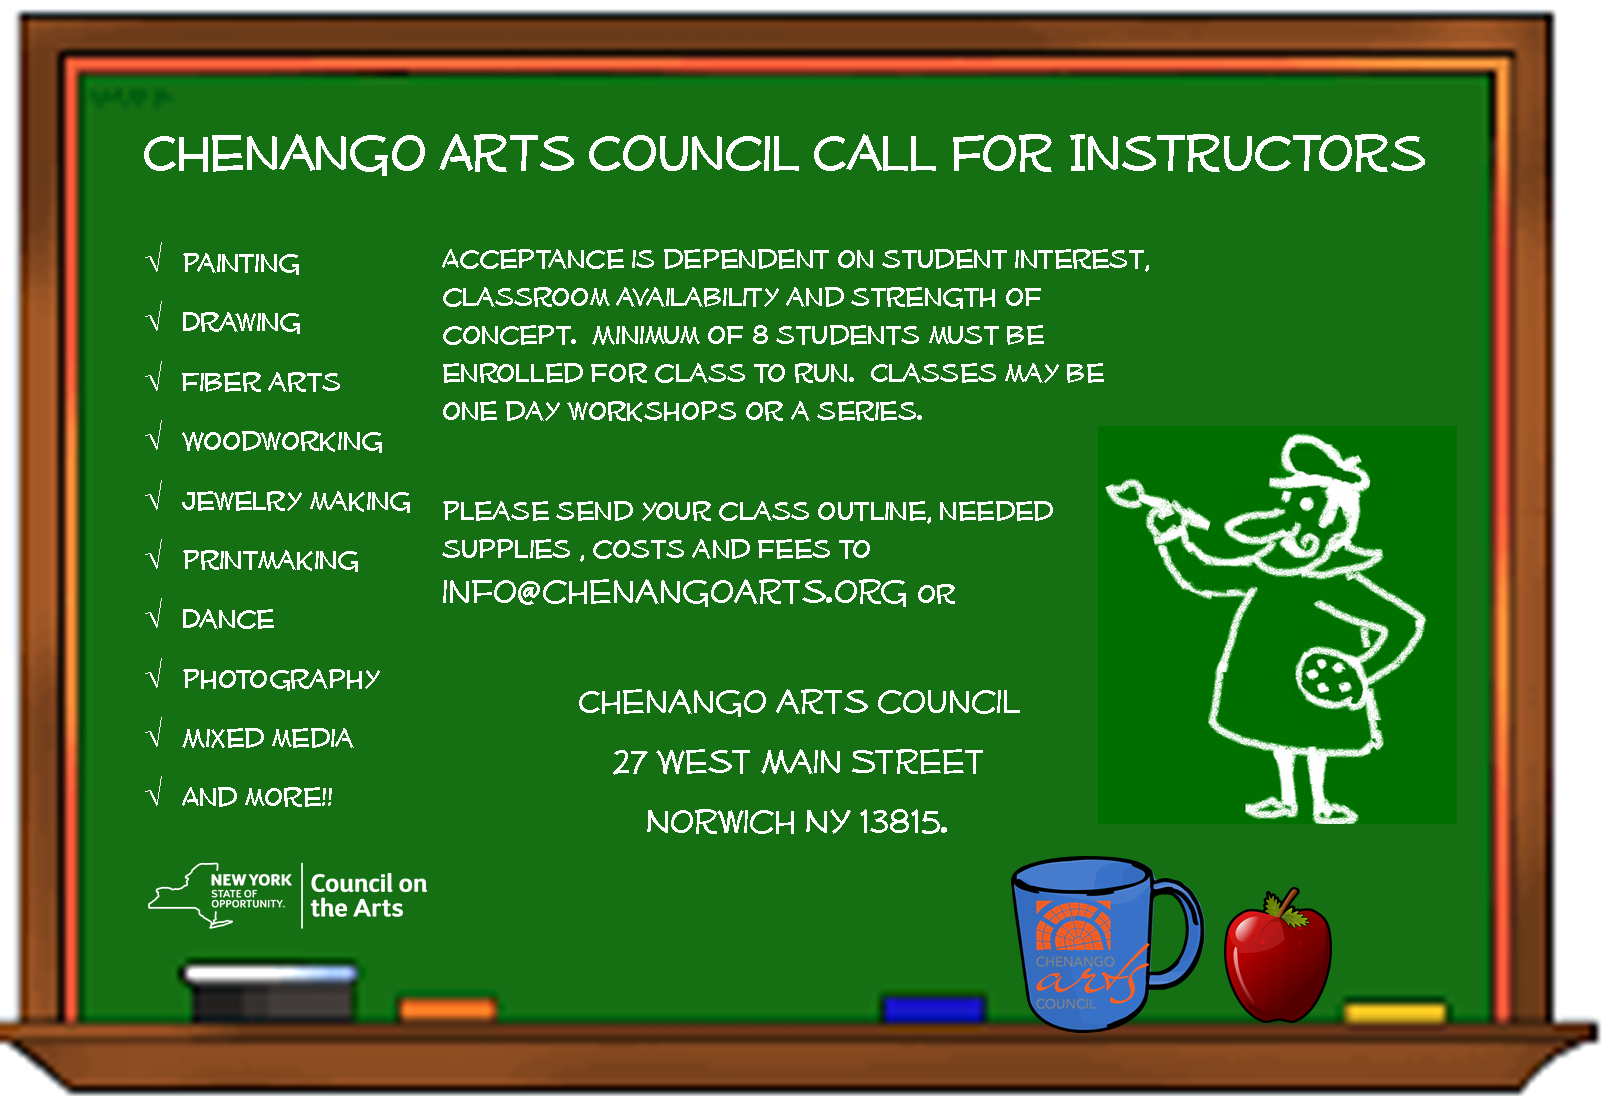 Call for Instructors!